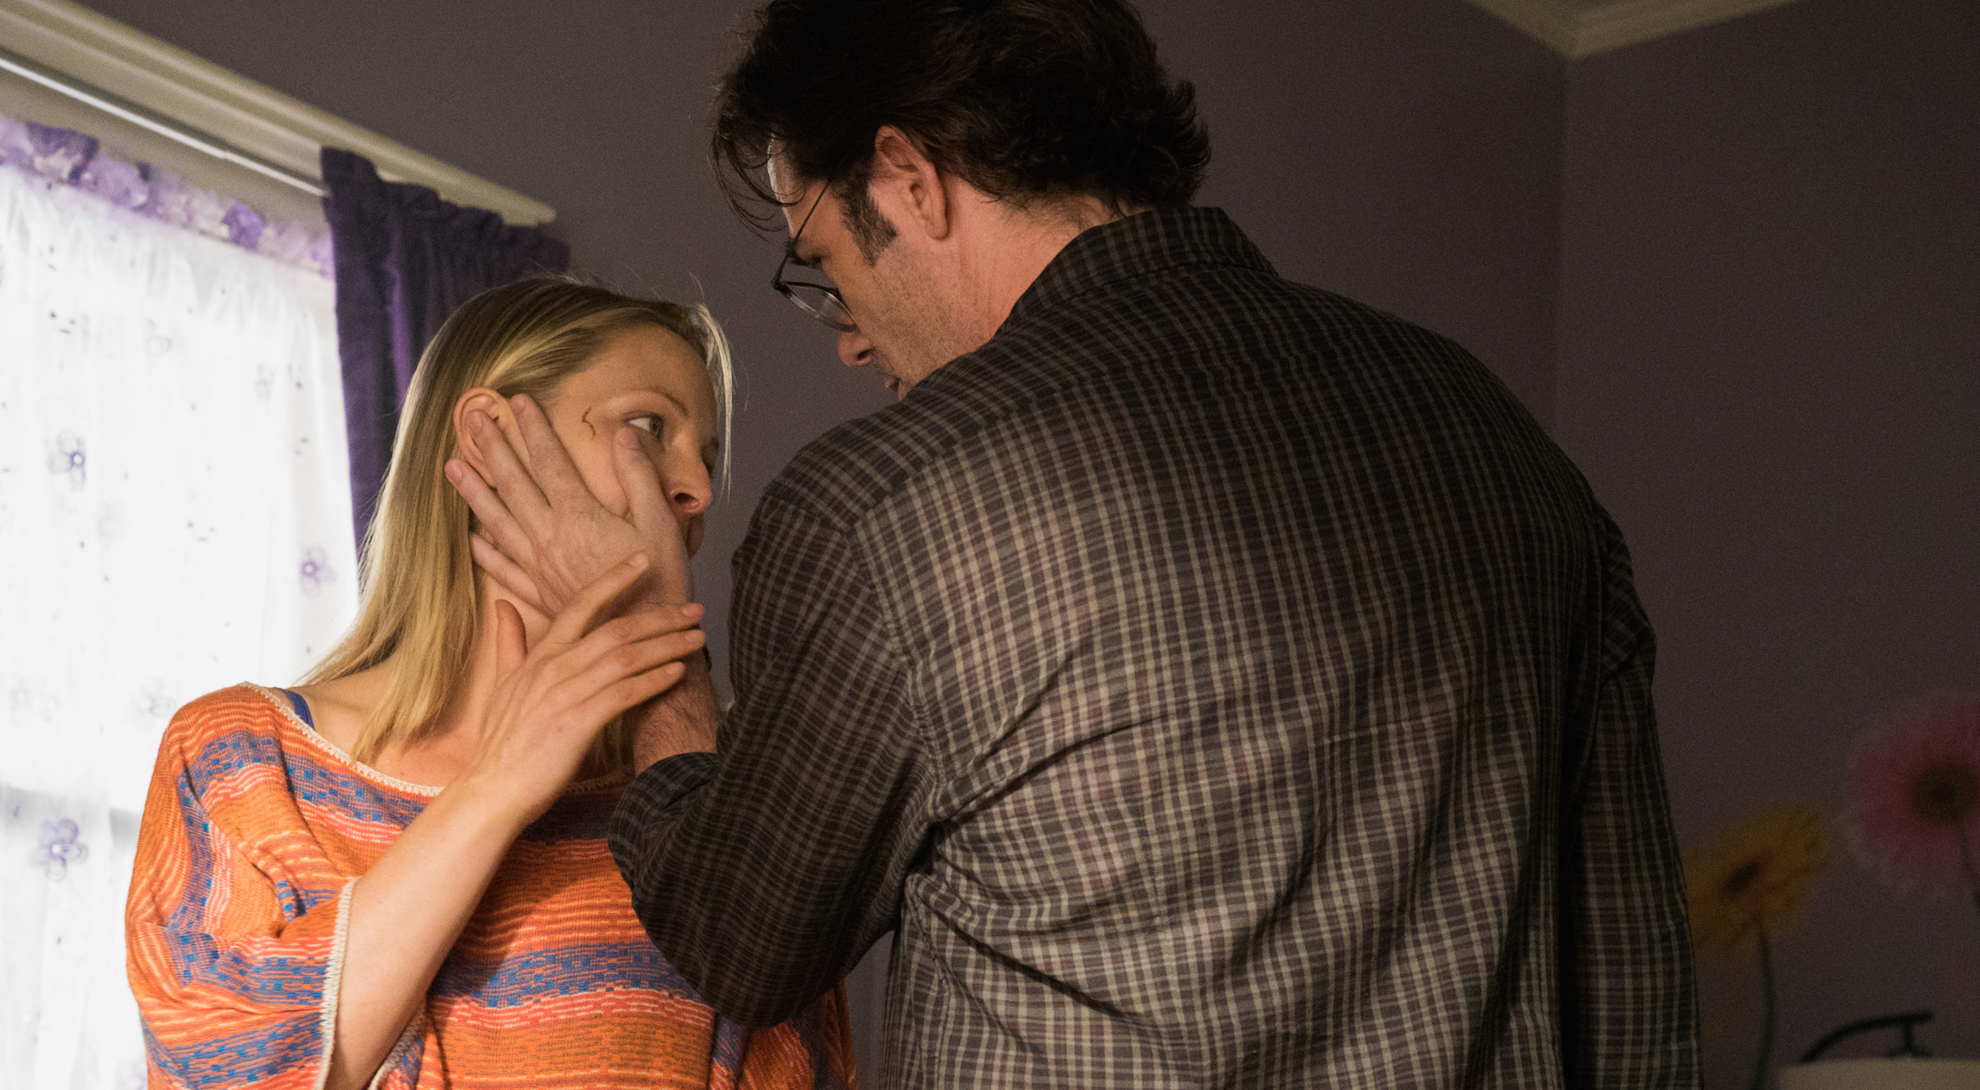 Anastasia Griffith as Audra Lewis and Billy Burke as Mitch Morgan.